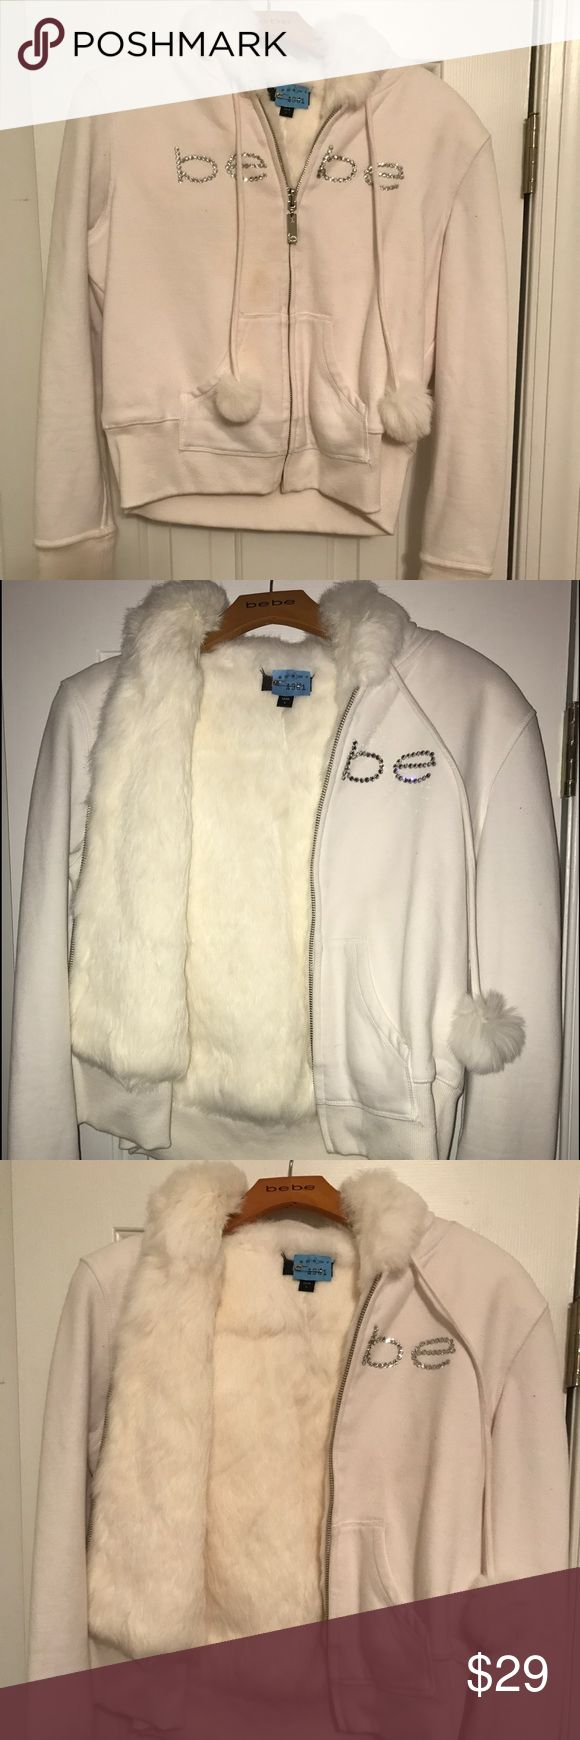 Bebe embellished white fur jacket w/ hood  sz: L Bebe embellished white fur jacket w/ hood sz: L. The inside of the jacket and hood is lined in fur. Only worn once and had dry cleaned. Super comfy and nice for a spring day! Make an offer ❤ bebe Jackets & Coats